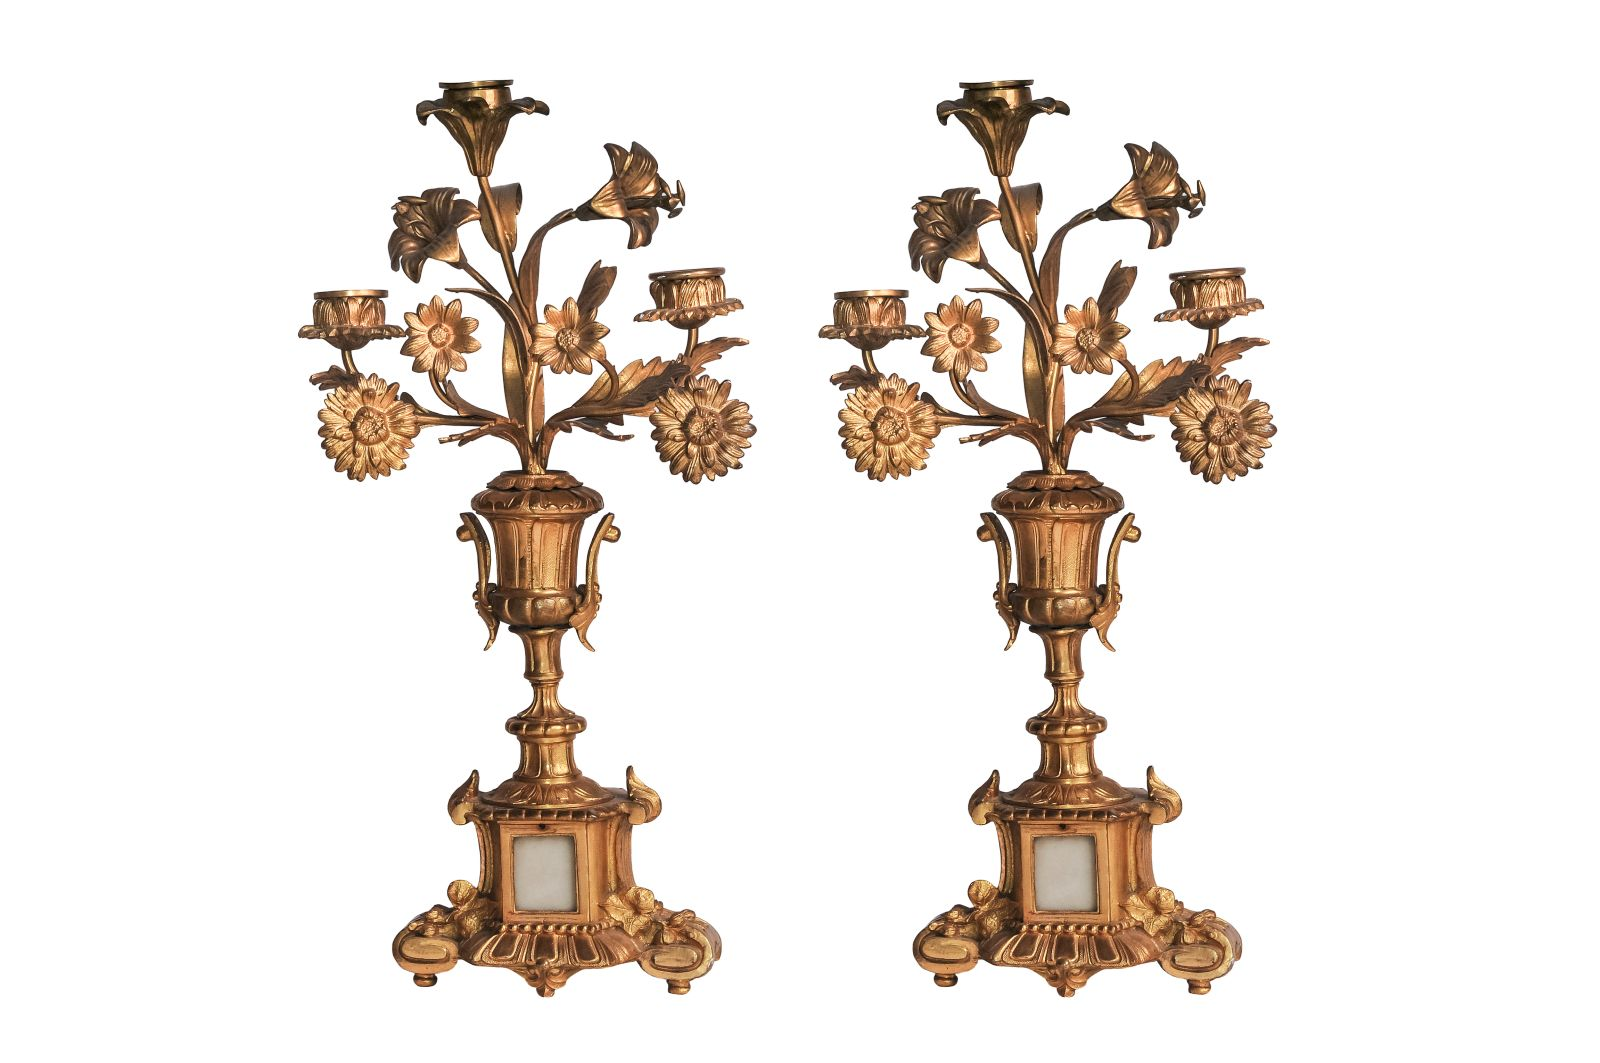 #110 A Pair of Brass CANDELABRAS | Paar Messing Kerzenleuchter Image